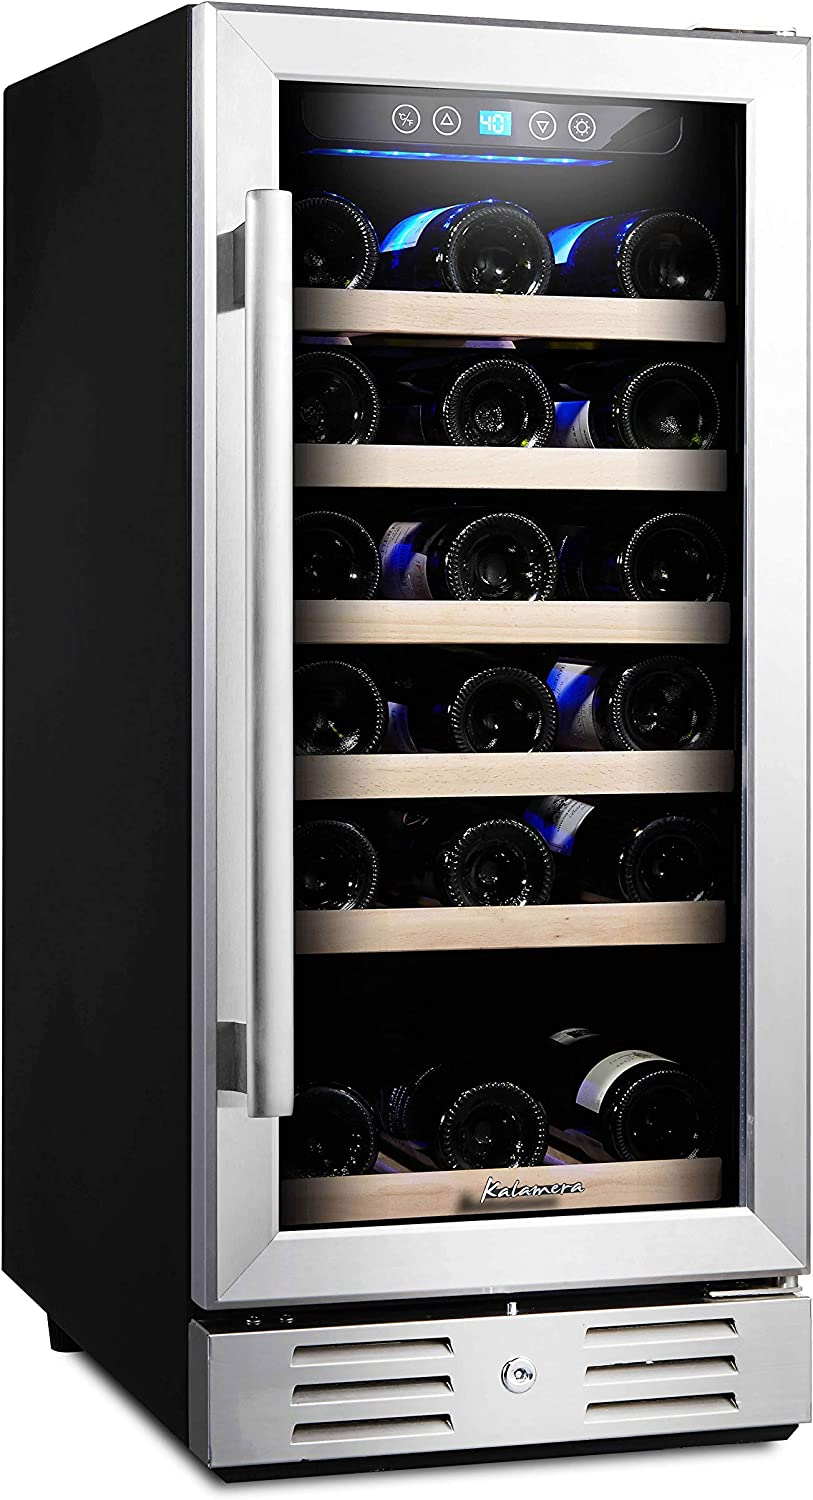 Kalamera 15 Wine Cooler 30 Bottle Built-in or Freestanding with Stainless Steel Double-Layer Tempered Glass Door and Temperature Memory Function